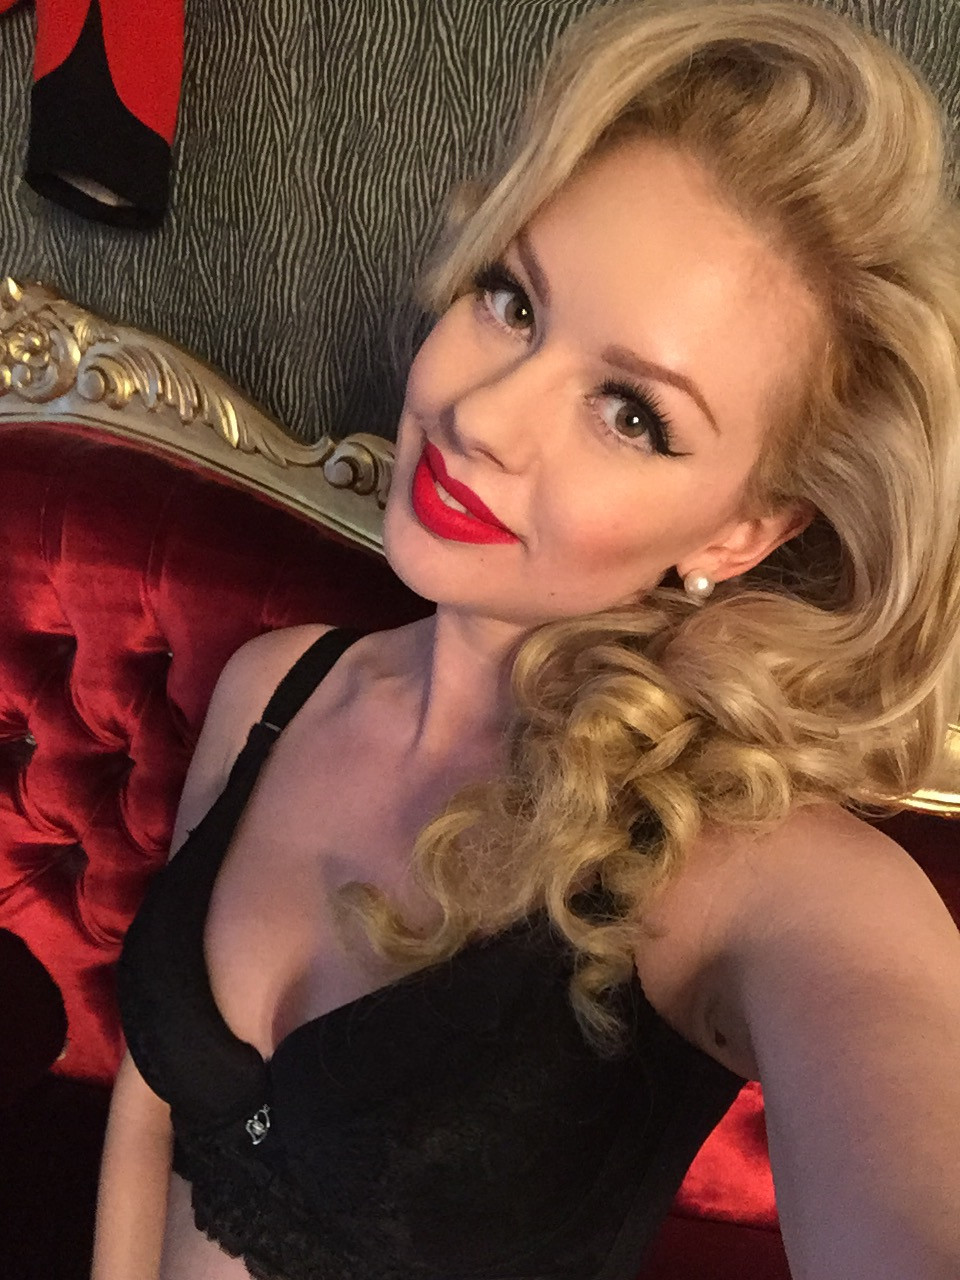 Heather Valentine Model | Hollywood Glamour Pin Up Boudoir Photo Shoot selfie